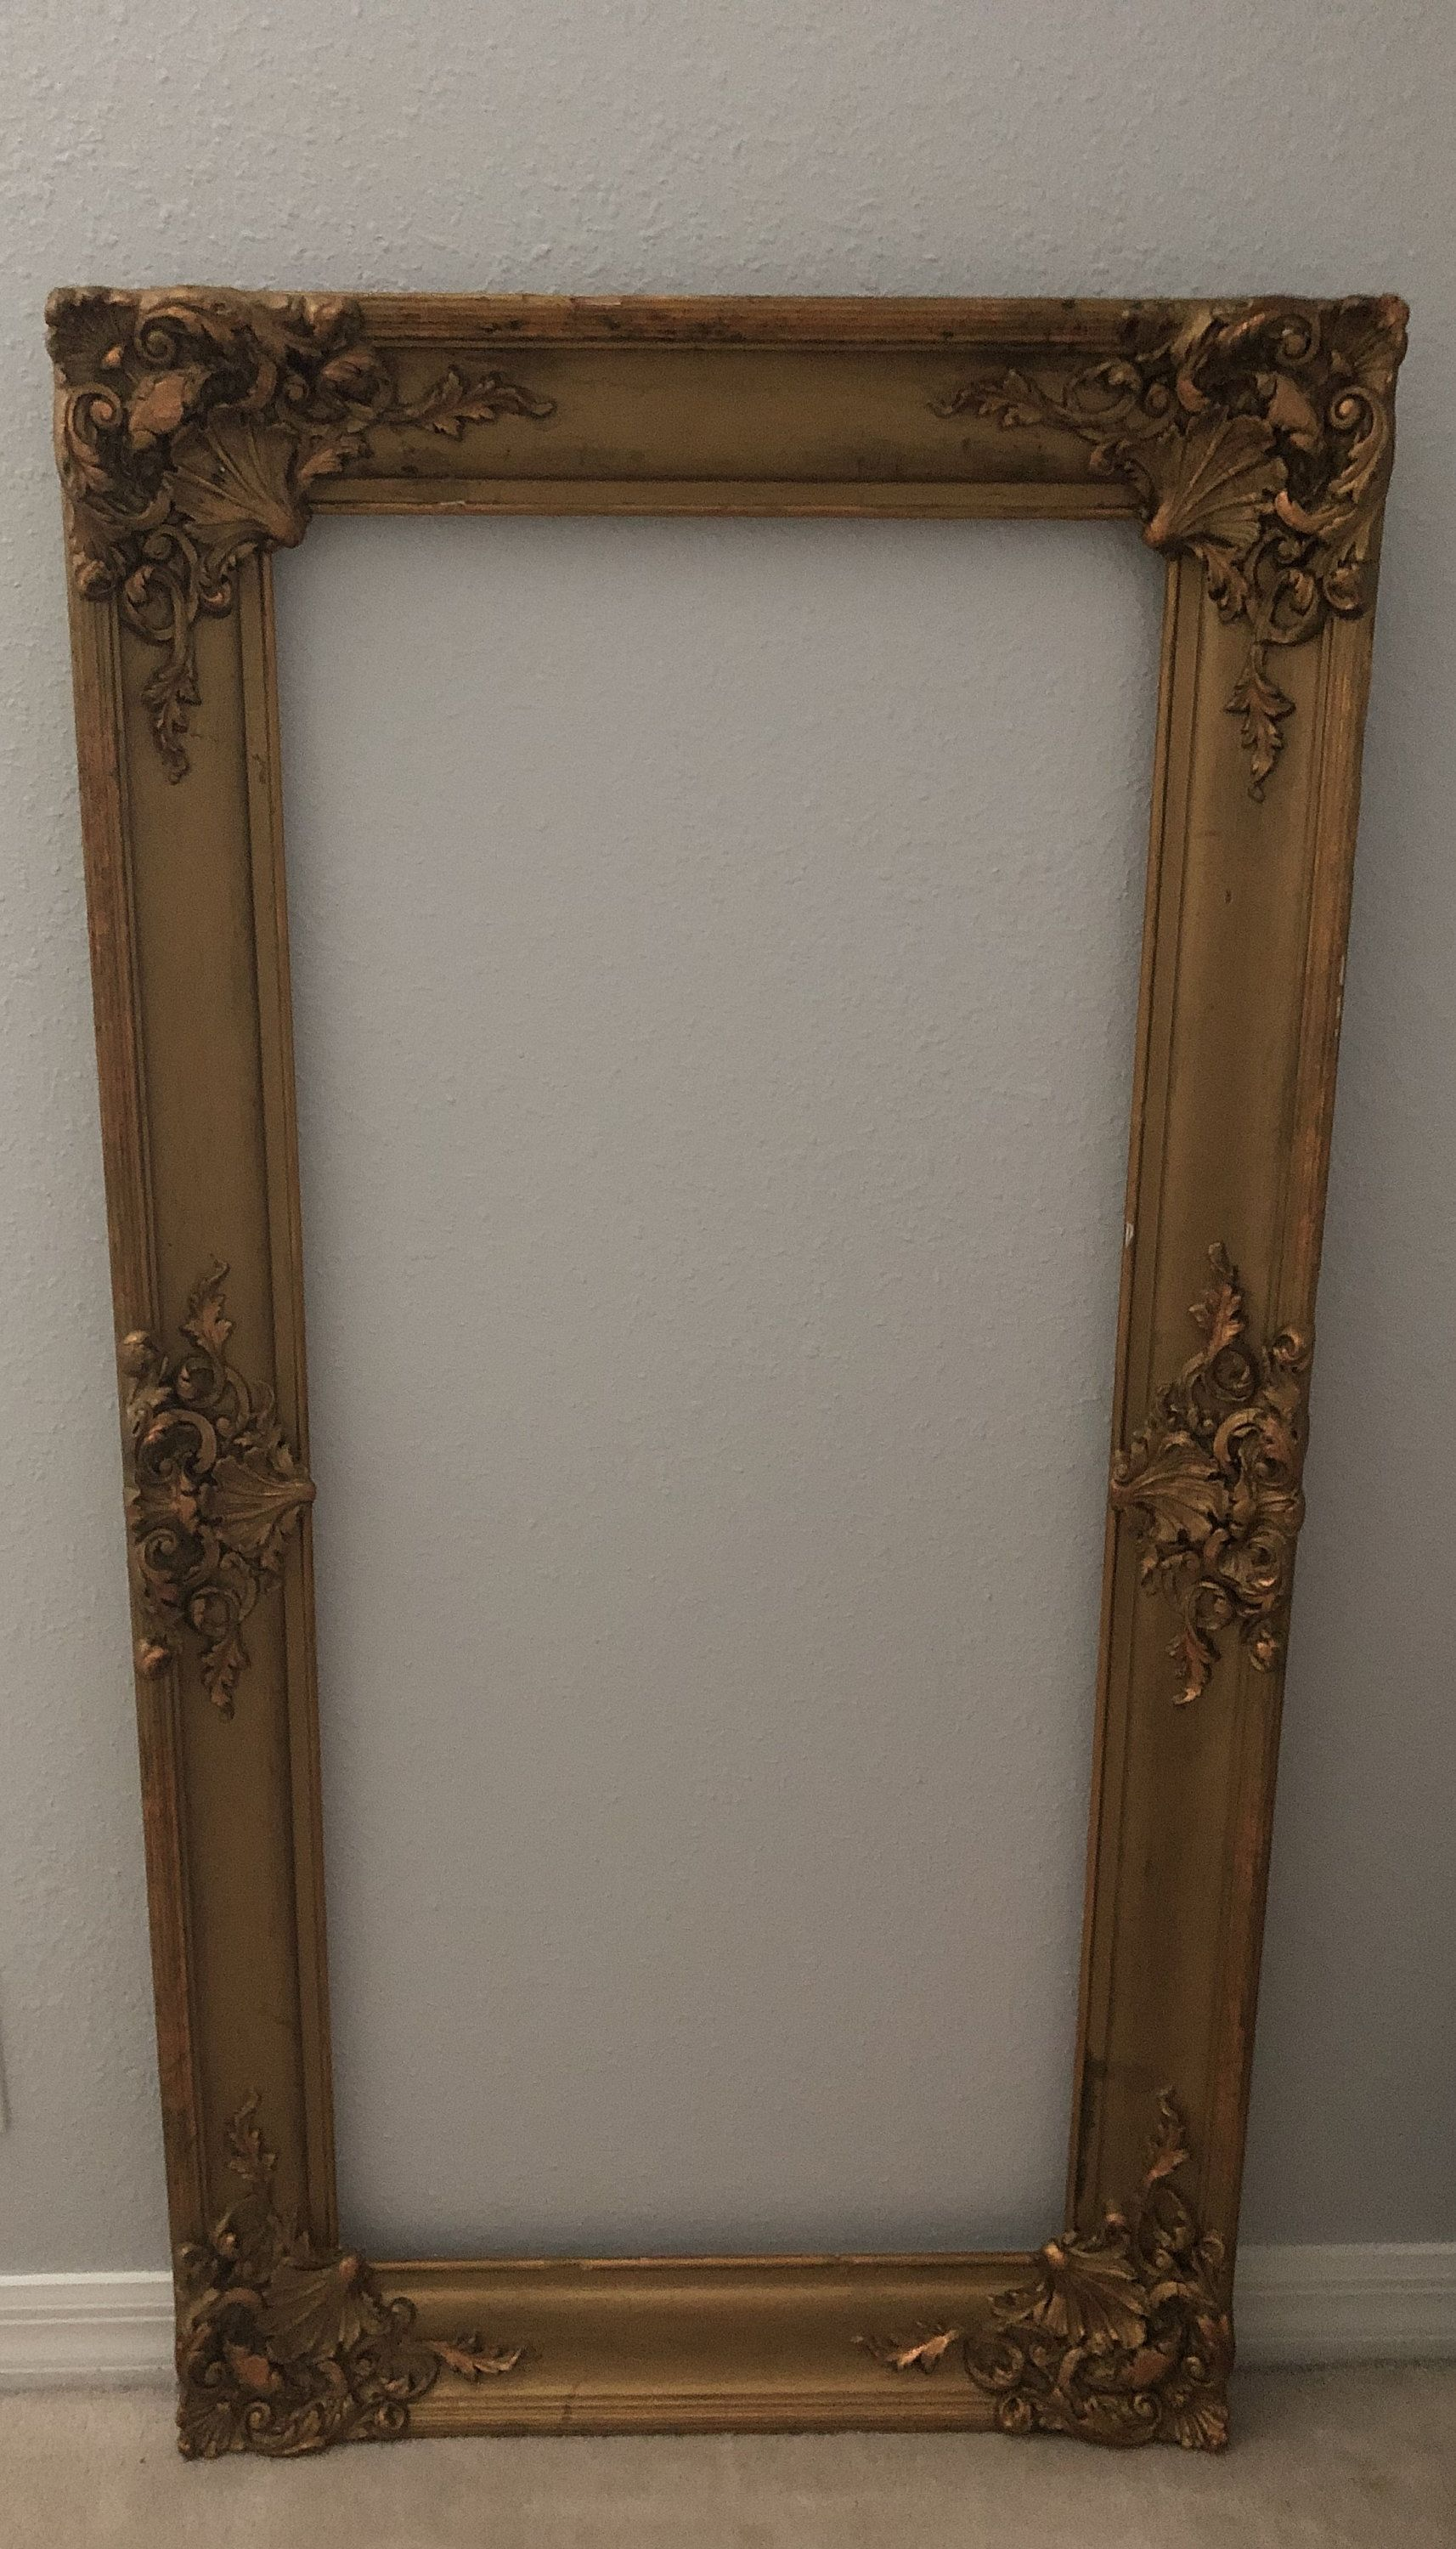 Large Antique Victorian Frame Rococo Baroque Mirror Frame Ornate Mirror Frame Gilded Wood And Gesso Antique Mirror Frame Large Antique Mirror Baroque Mirror